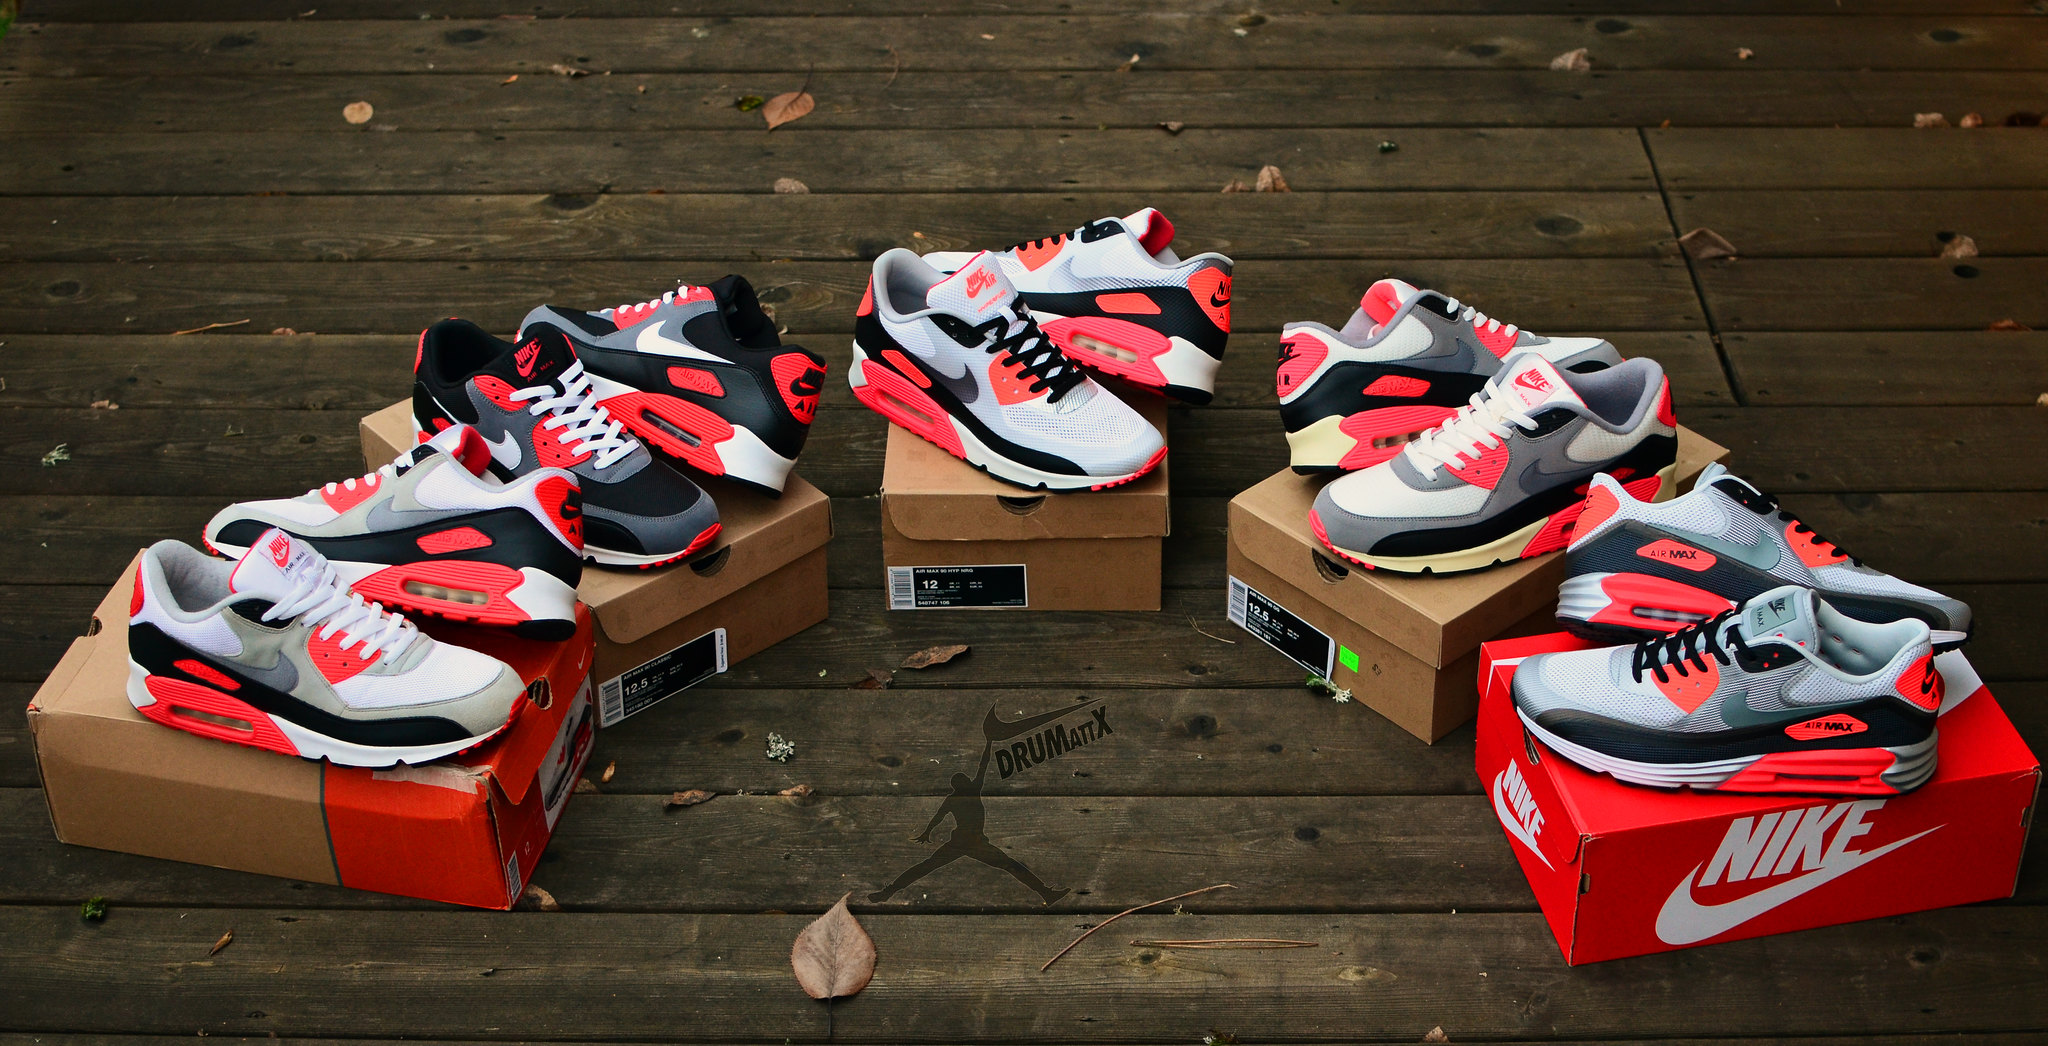 Air Max 90 Infrared Lunar